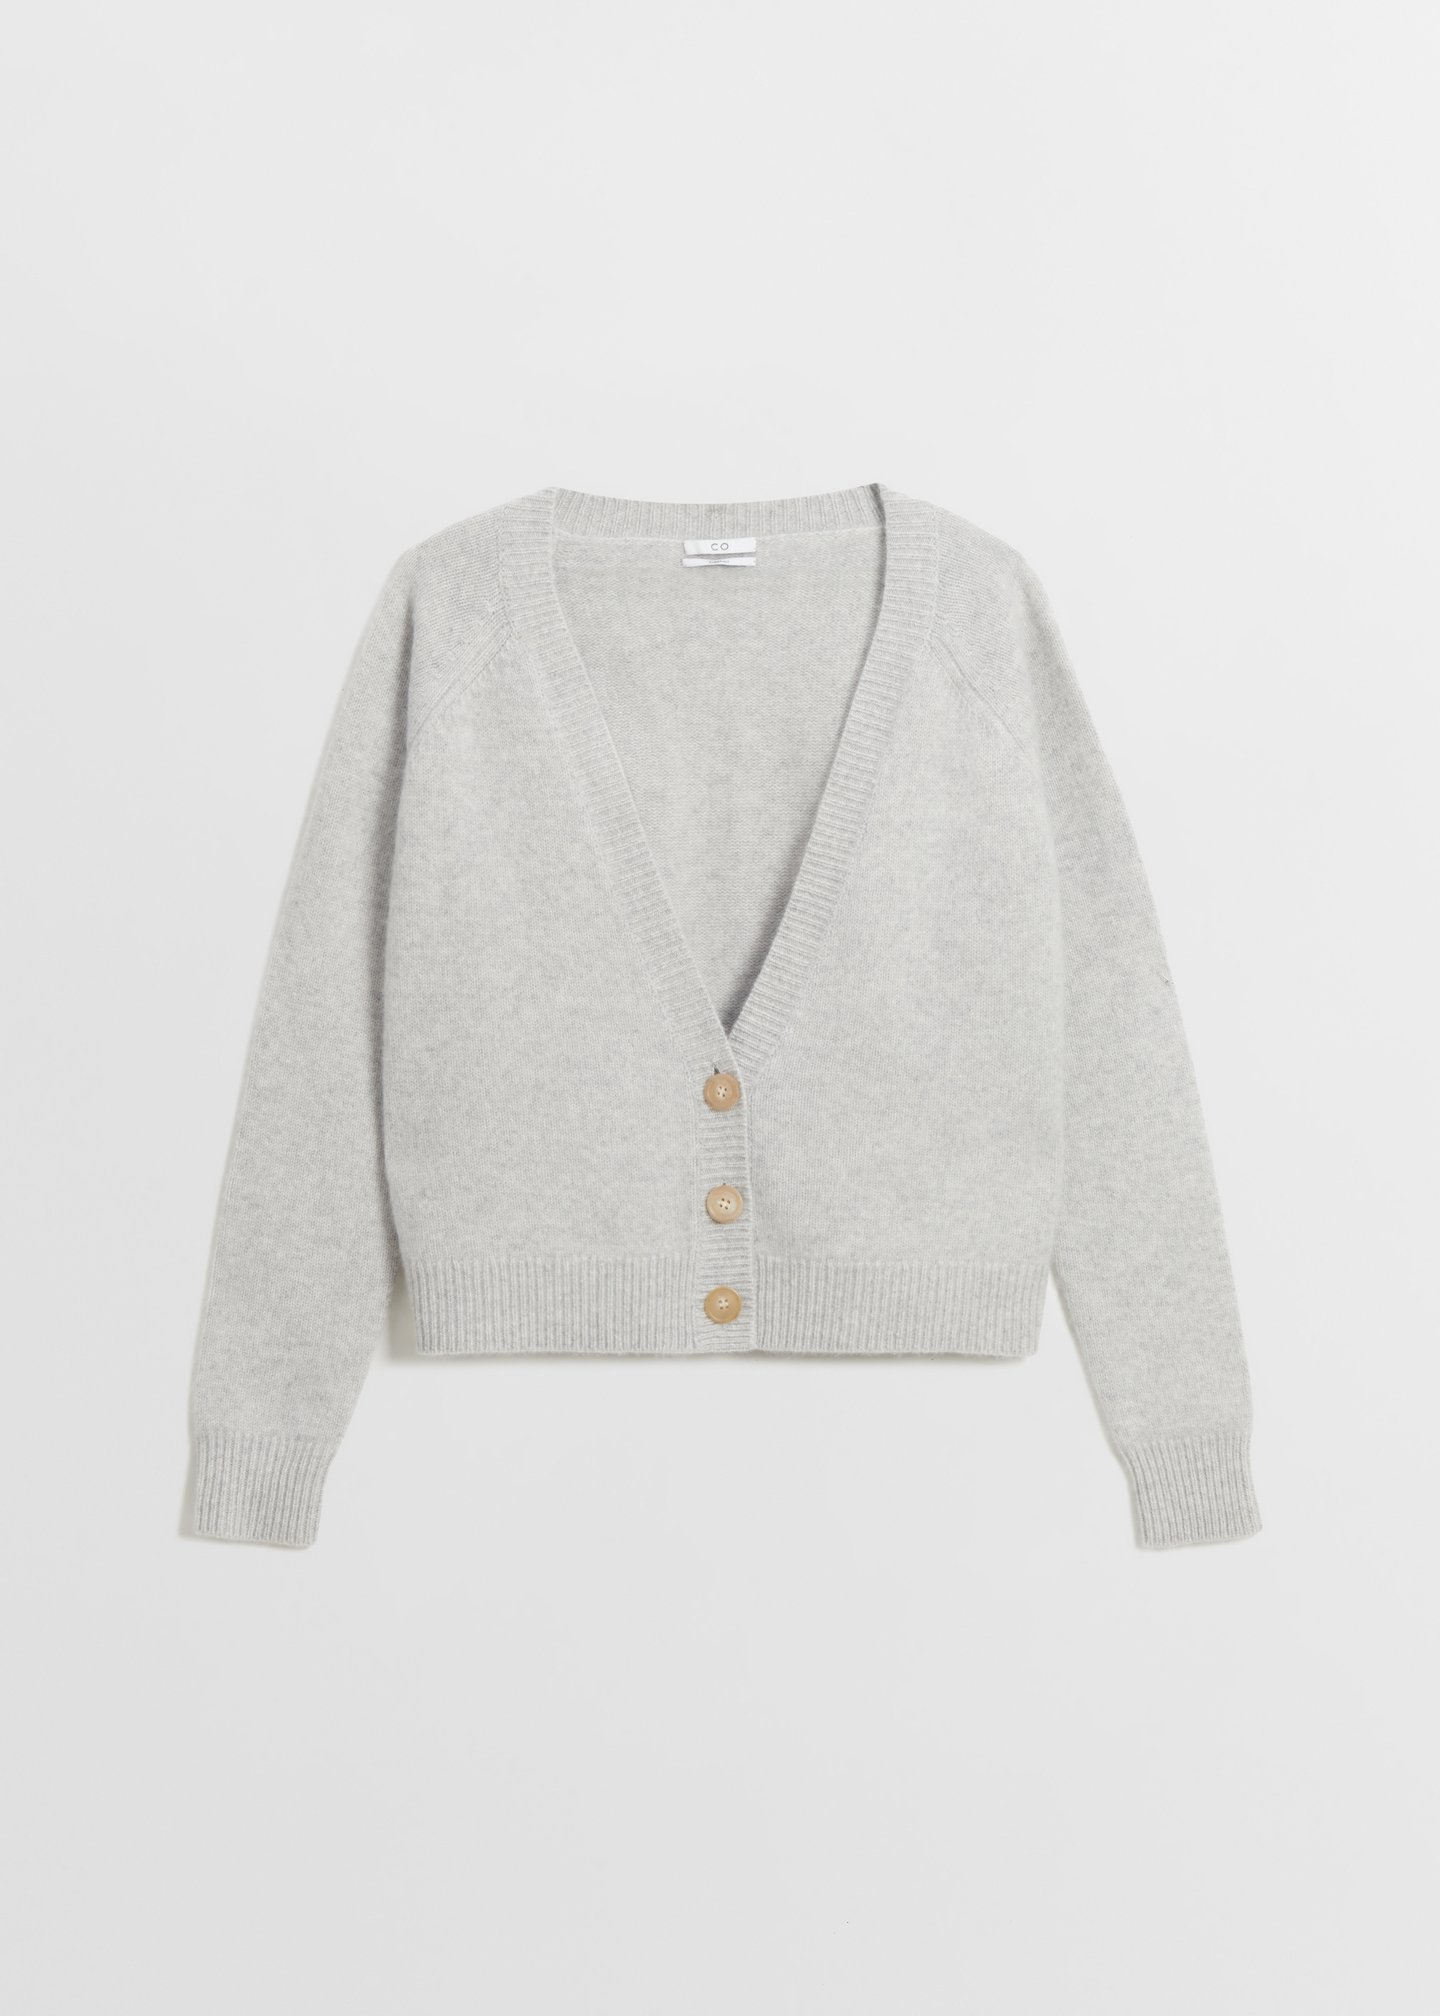 CO - Cropped Cardigan in Boiled Cashmere - Light Grey